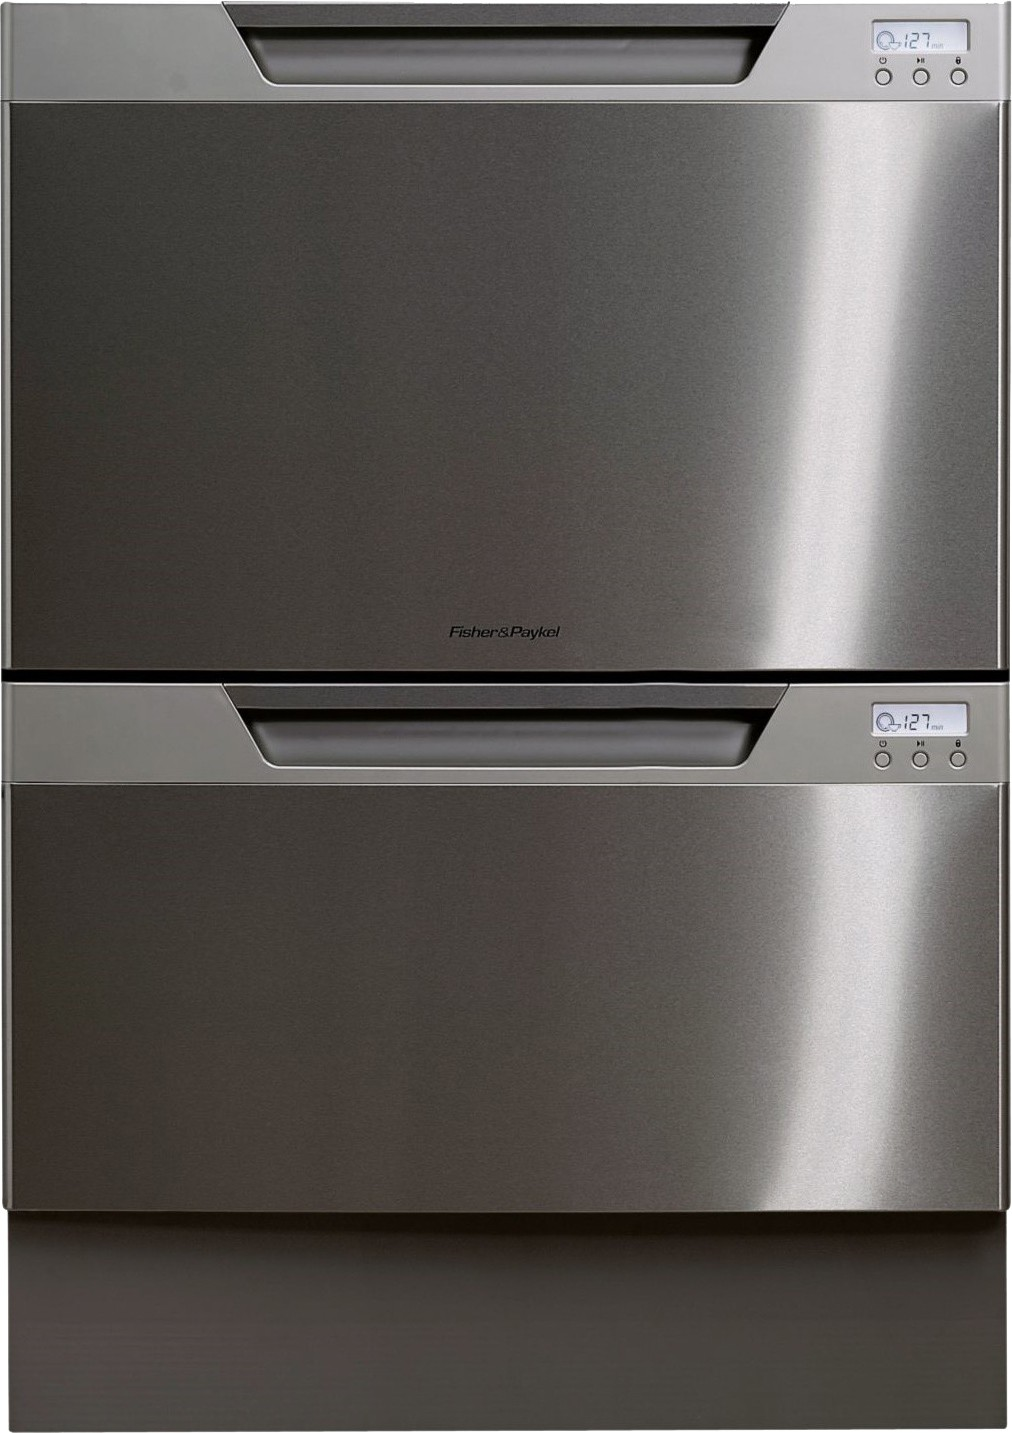 Fisher and paykel 2 drawer dishwasher - Fisher And Paykel 2 Drawer Dishwasher 53